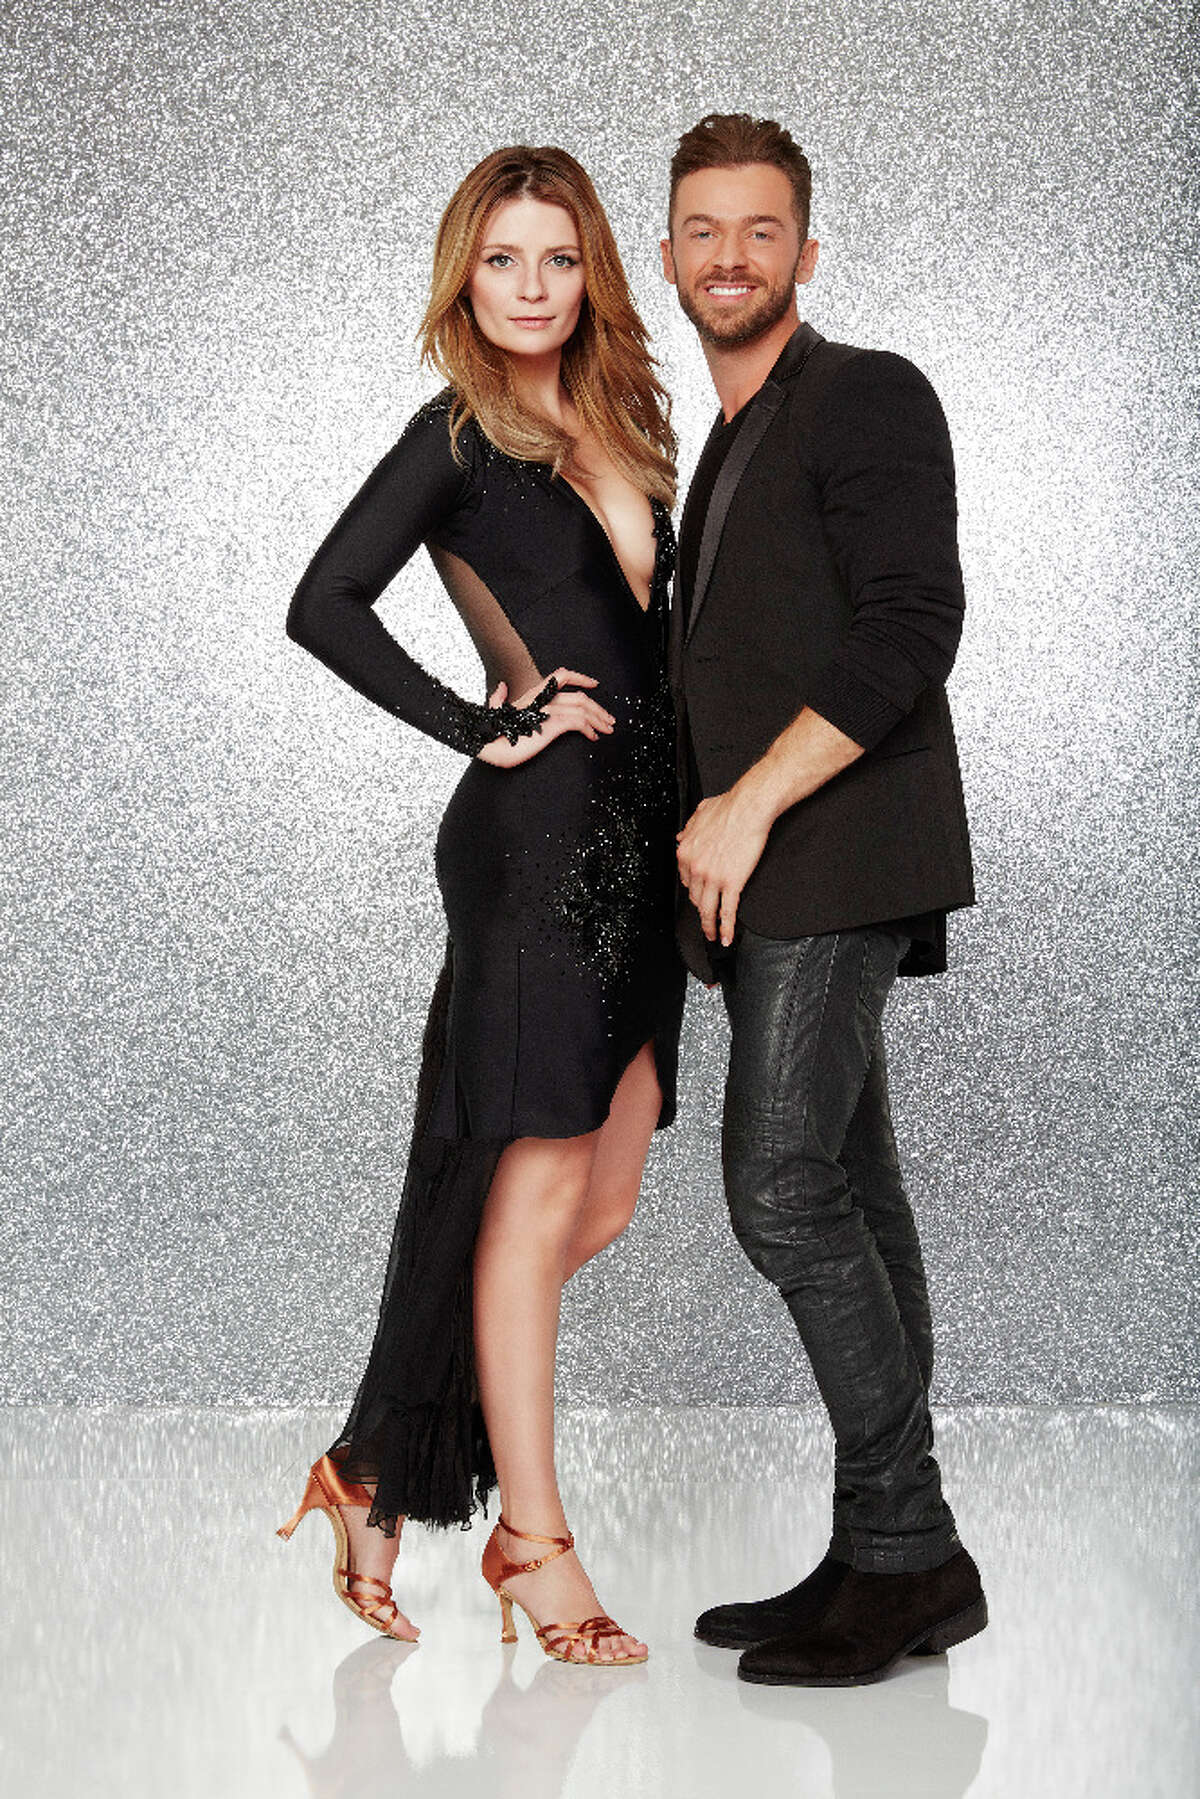 DANCING WITH THE STARS - MISCHA BARTON AND ARTEM CHIGVINTSEV - The stars grace the ballroom floor for the first time on live national television with their professional partners during the two-hour season premiere of